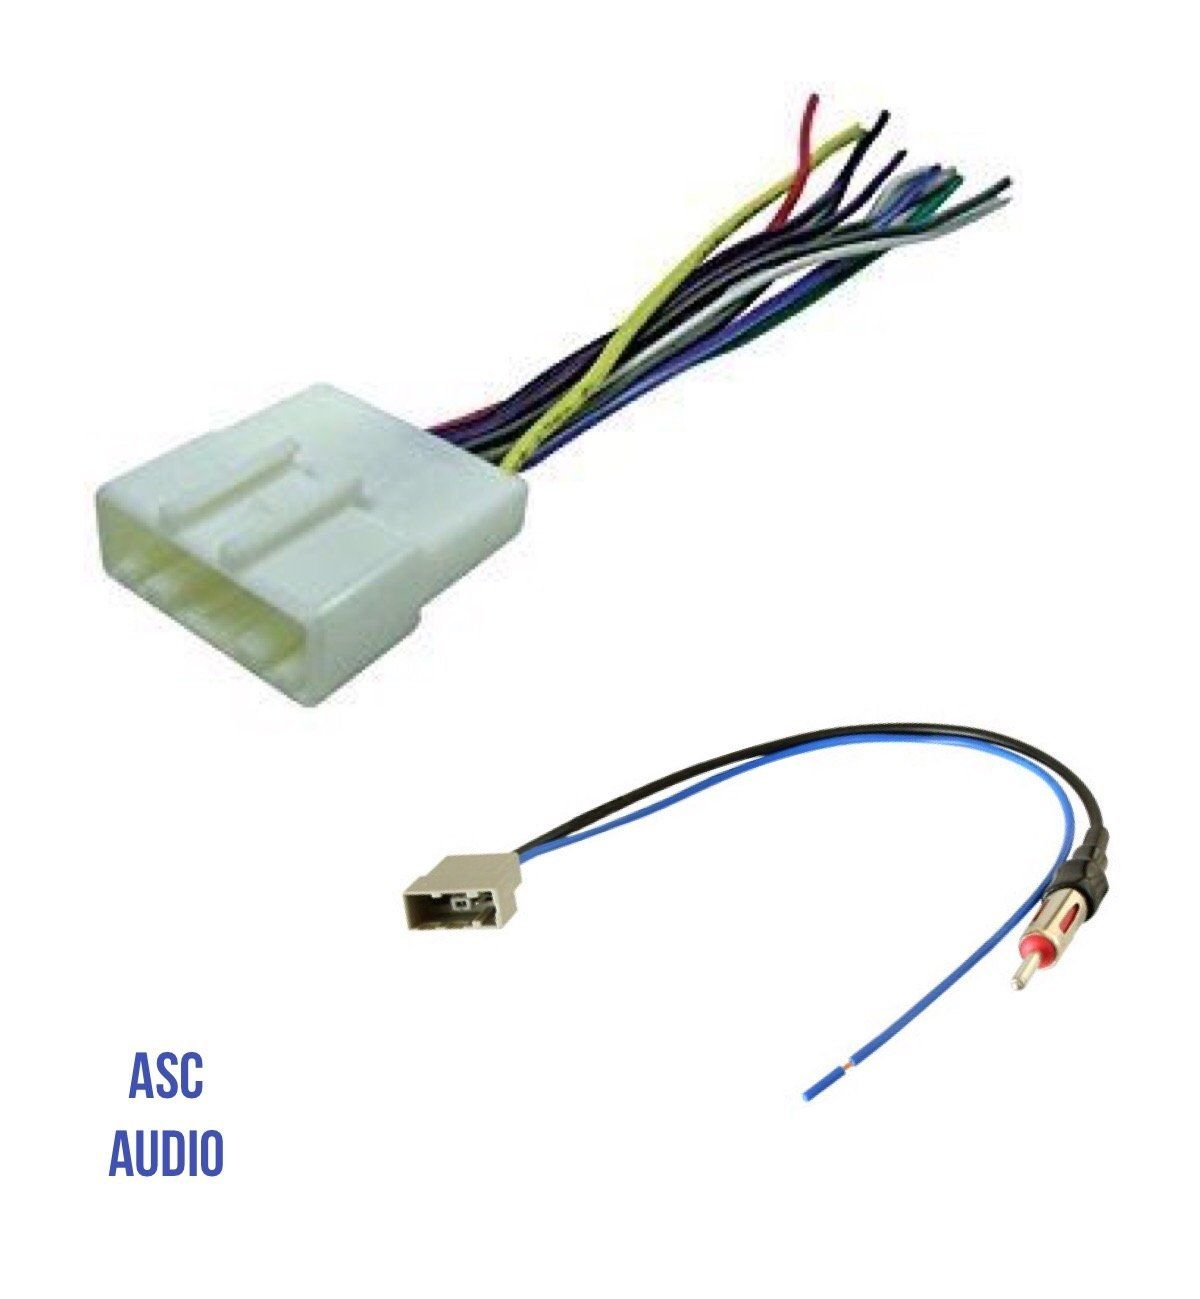 small resolution of asc audio car stereo radio wire harness and antenna adapter to aftermarket radio for some infiniti nissan subaru etc listed below